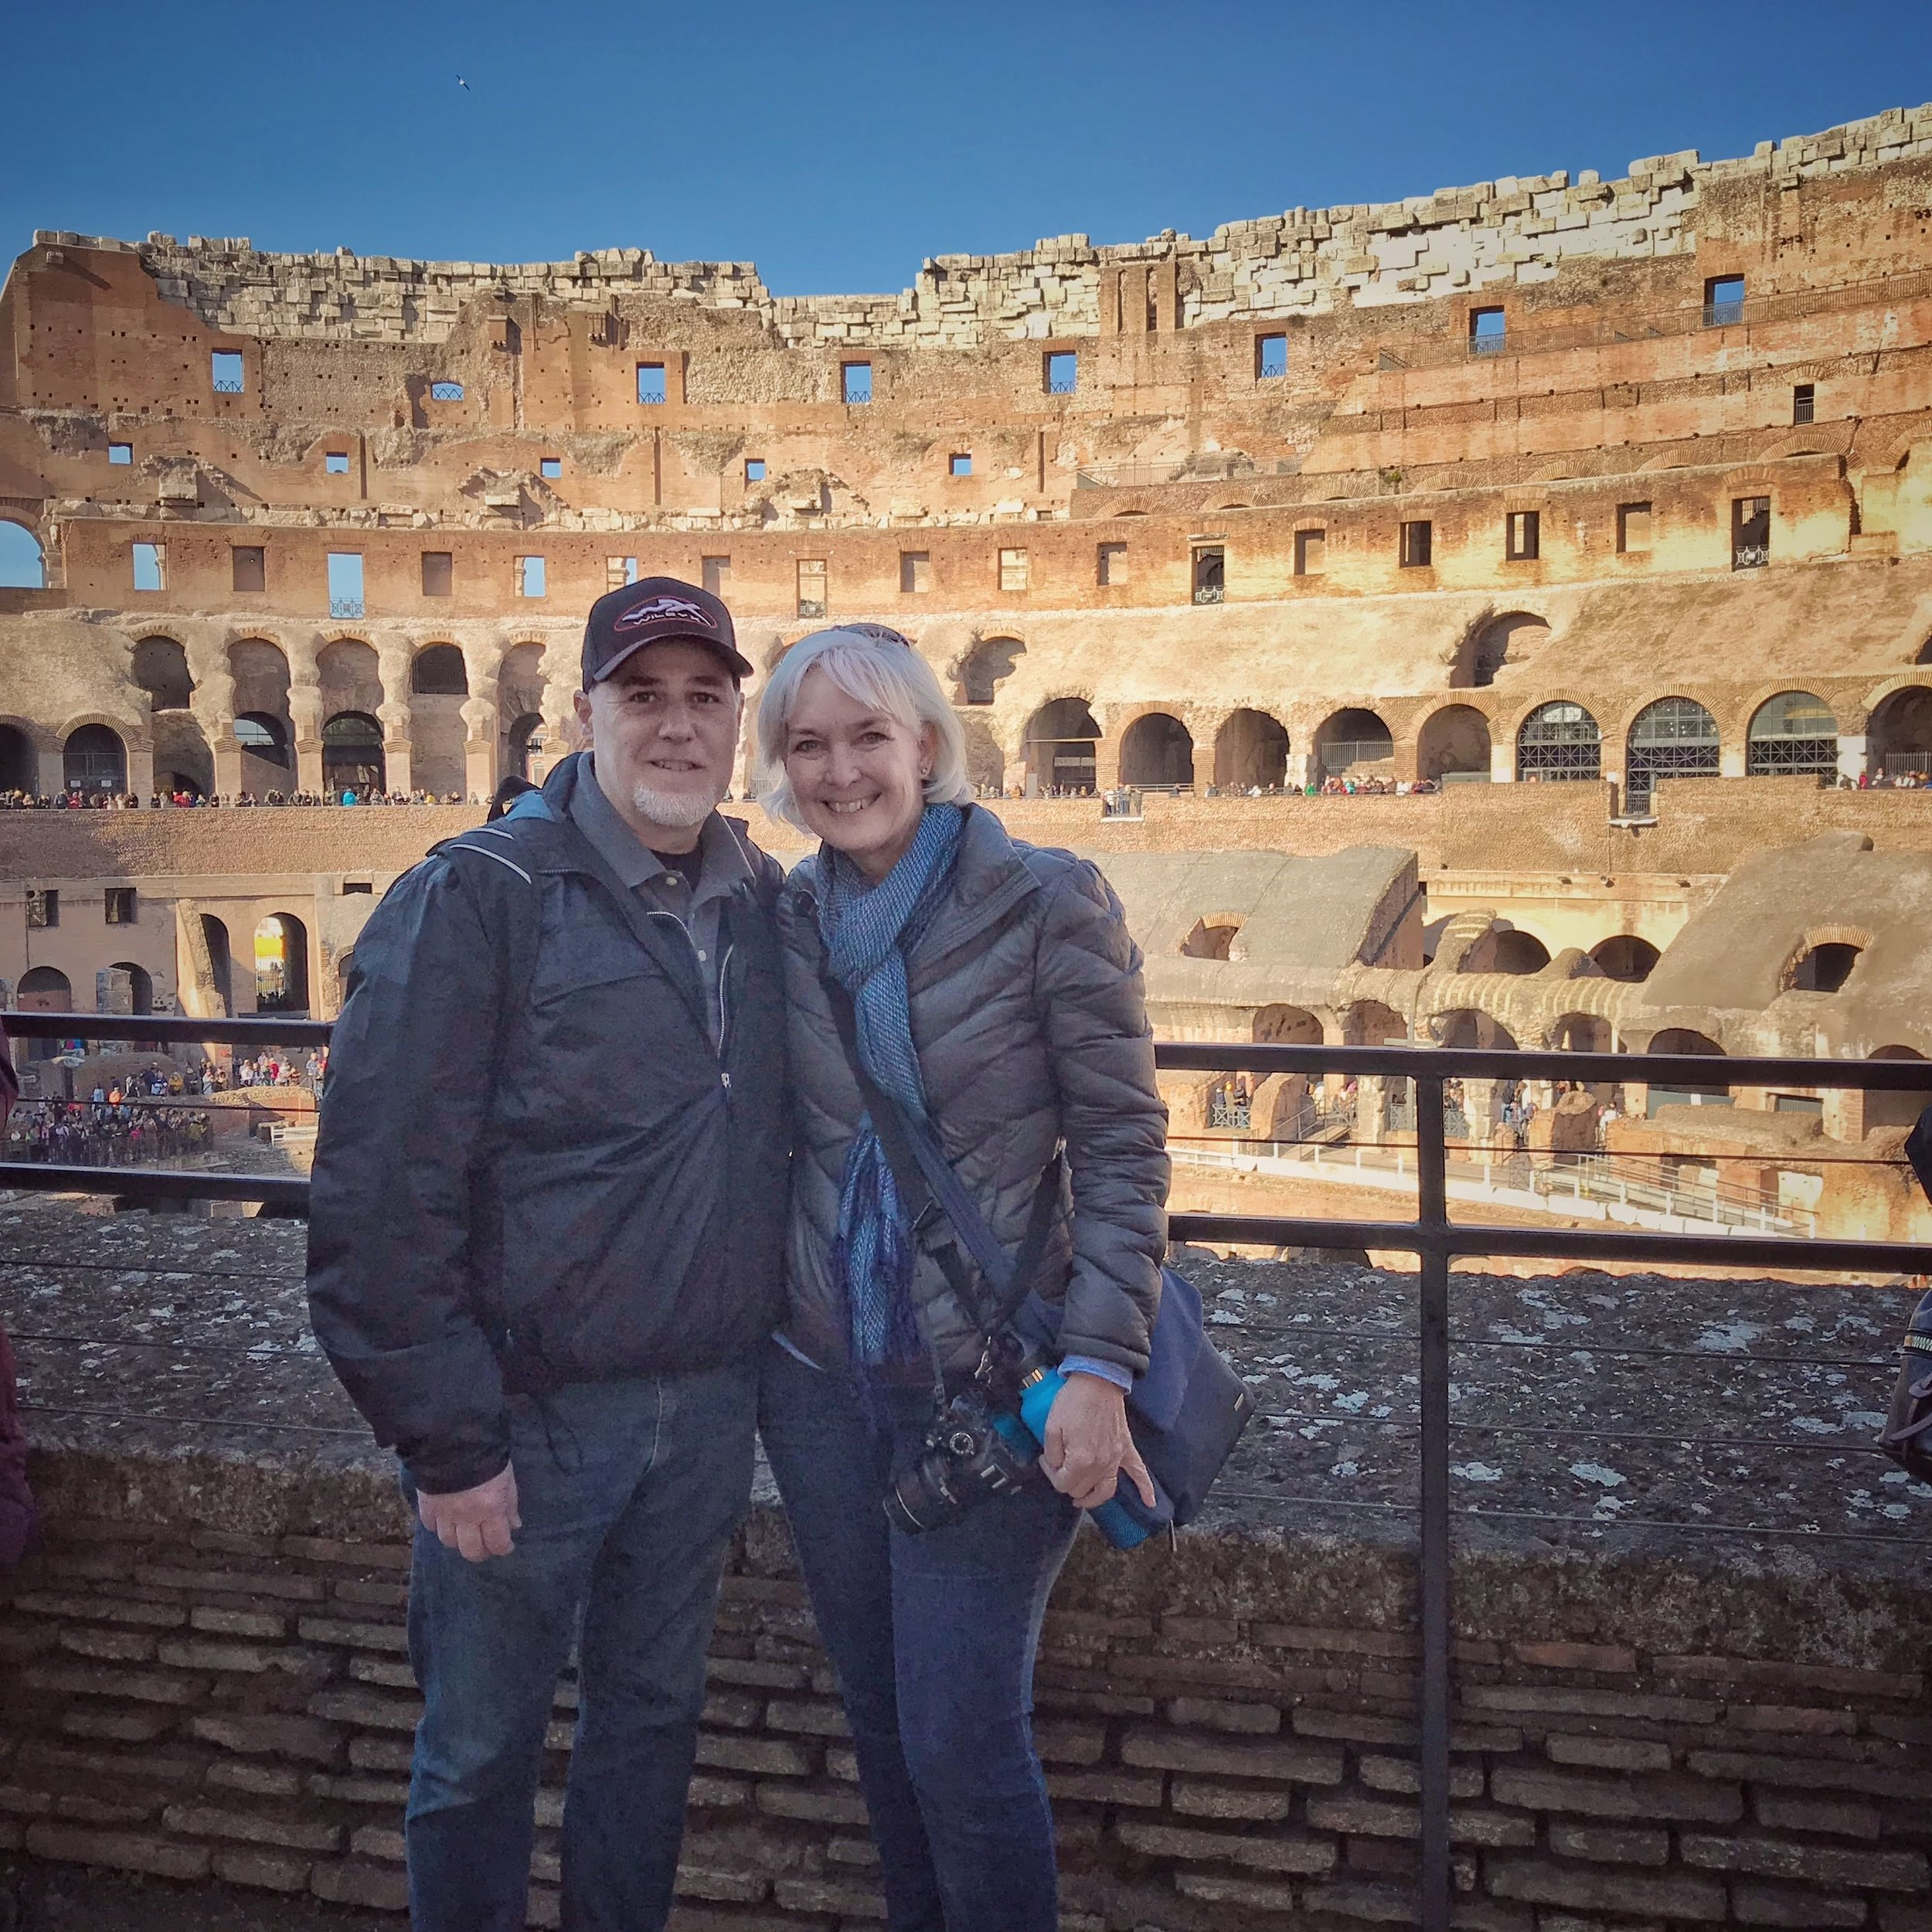 Here we are inside The Colosseum